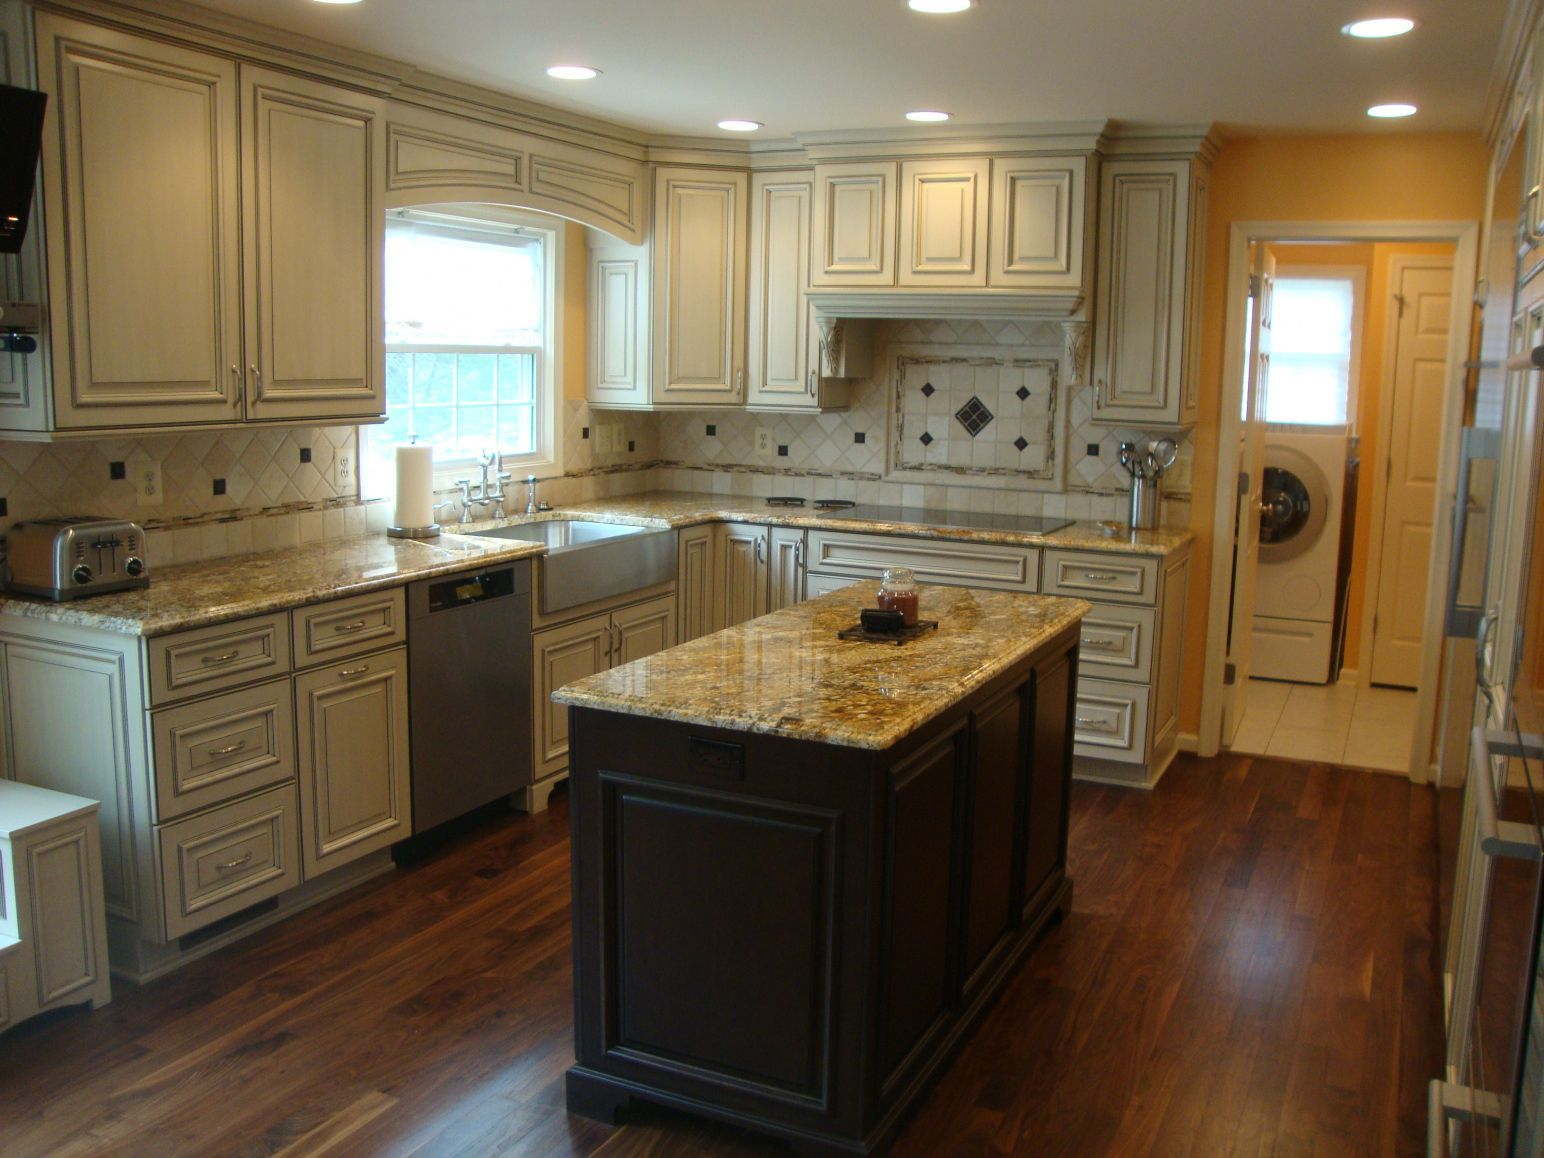 Cost Of New Kitchen Oak Cabinet 100 Average Remodeling Remodel Ideas For Small Kitchens Check More At